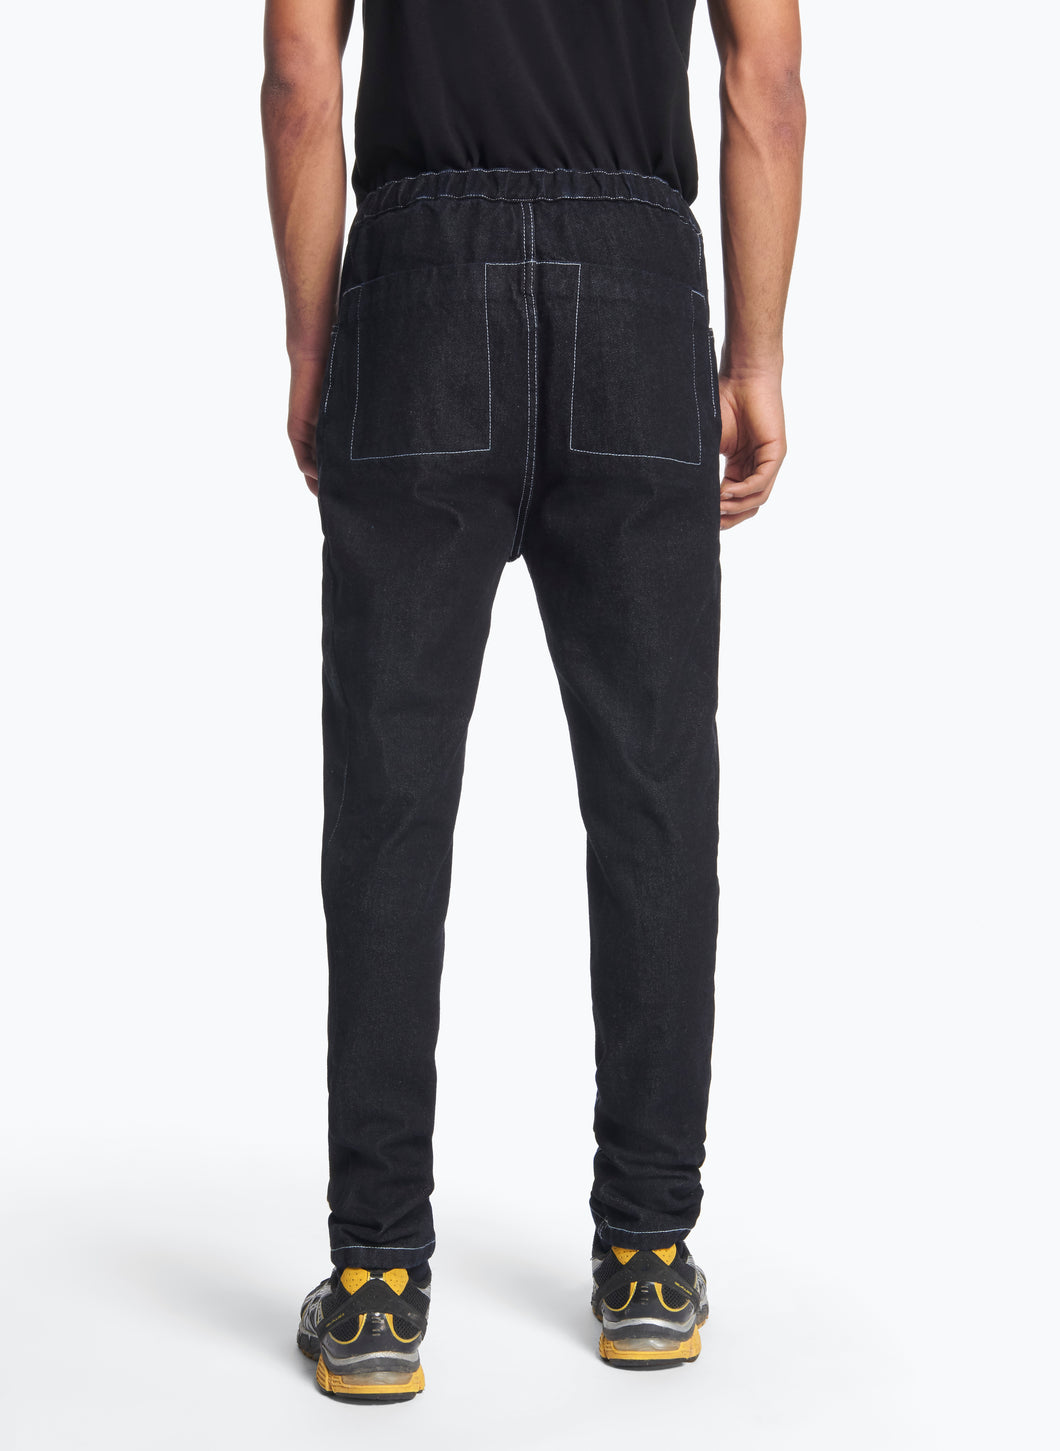 5-Pocket Pants with Front Cuts in Raw Denim